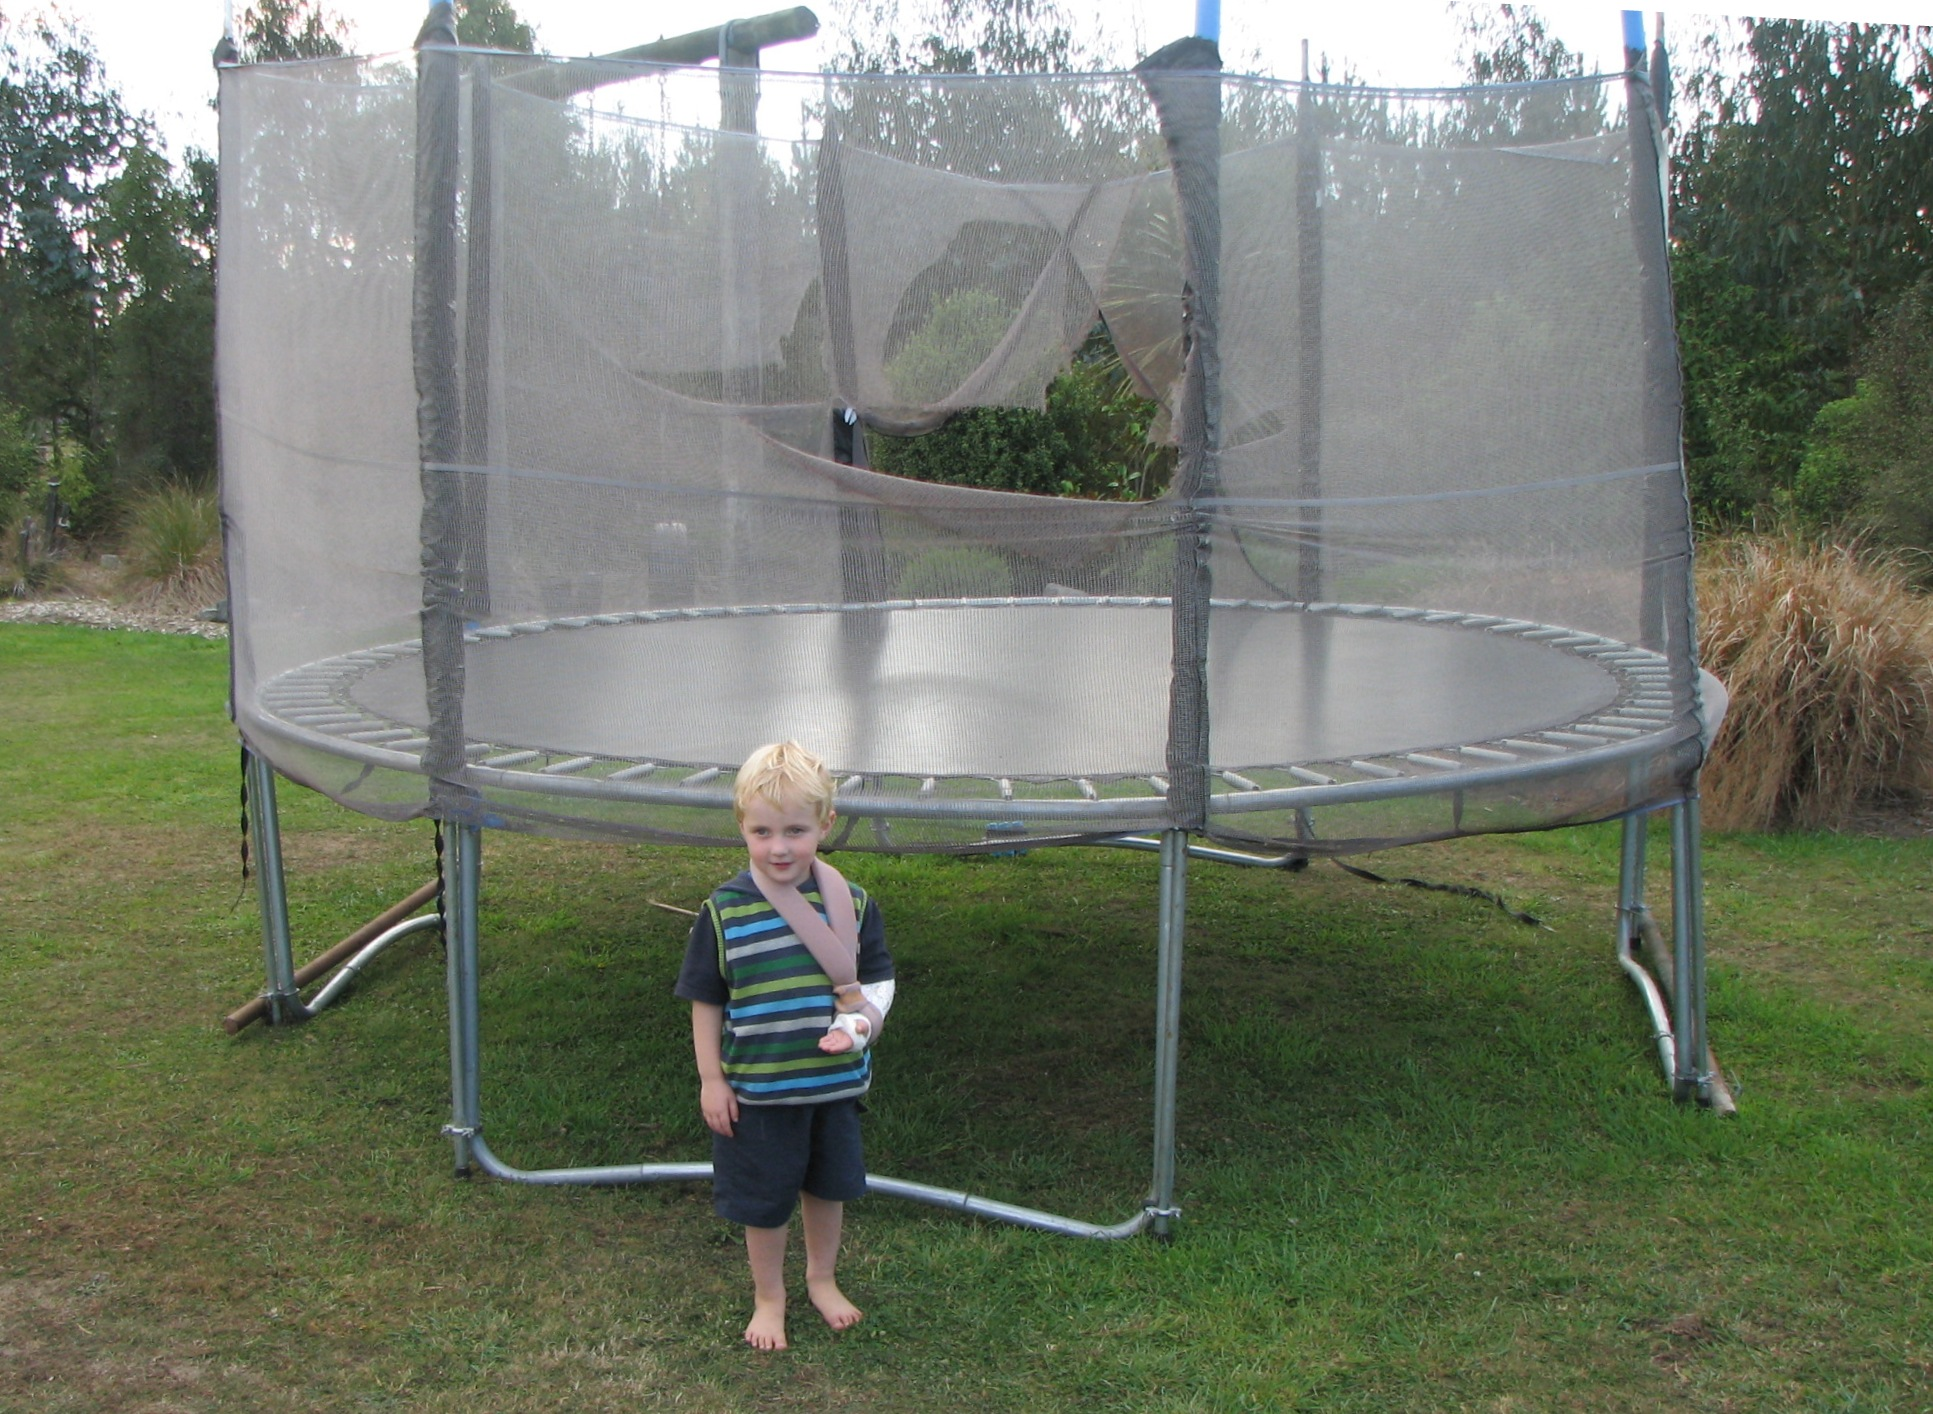 Effectiveness of pads and enclosures as safety interventions on consumer trampolines Author Keith Alexander, David Eager, Carl Scarrott, George Sushinsky